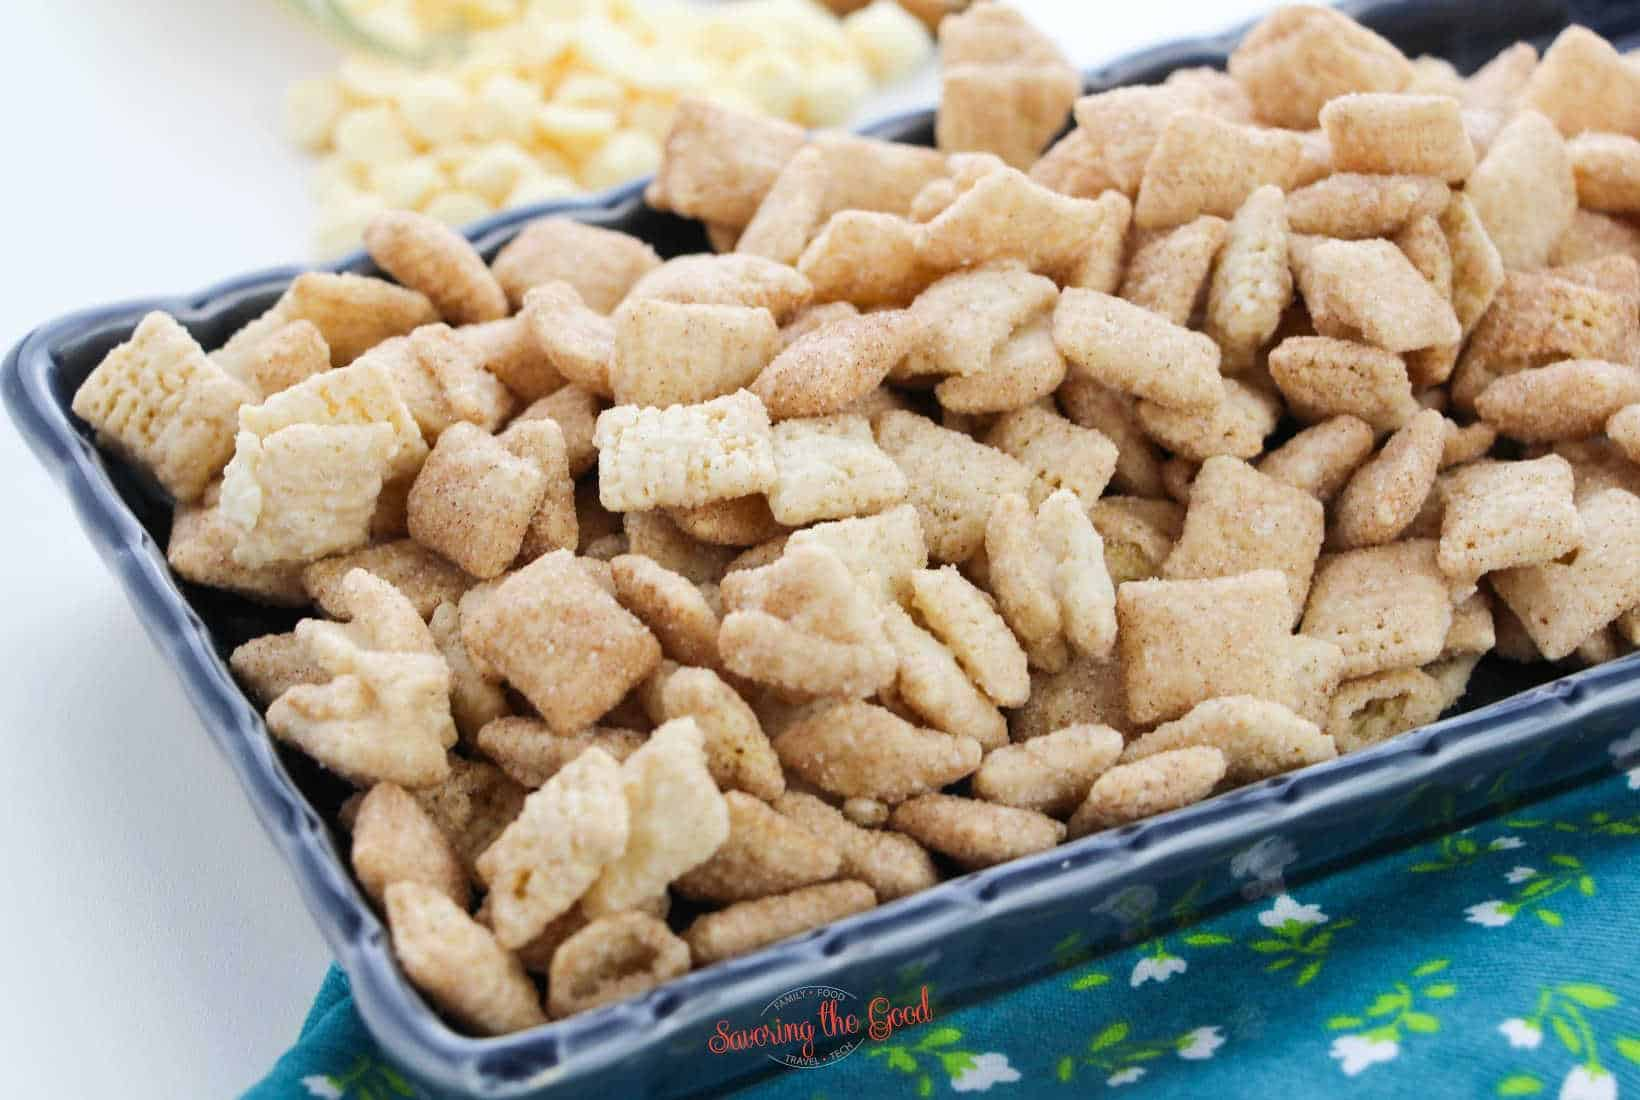 Snickerdoodle muddy buddies in a blue rectangle serving dish